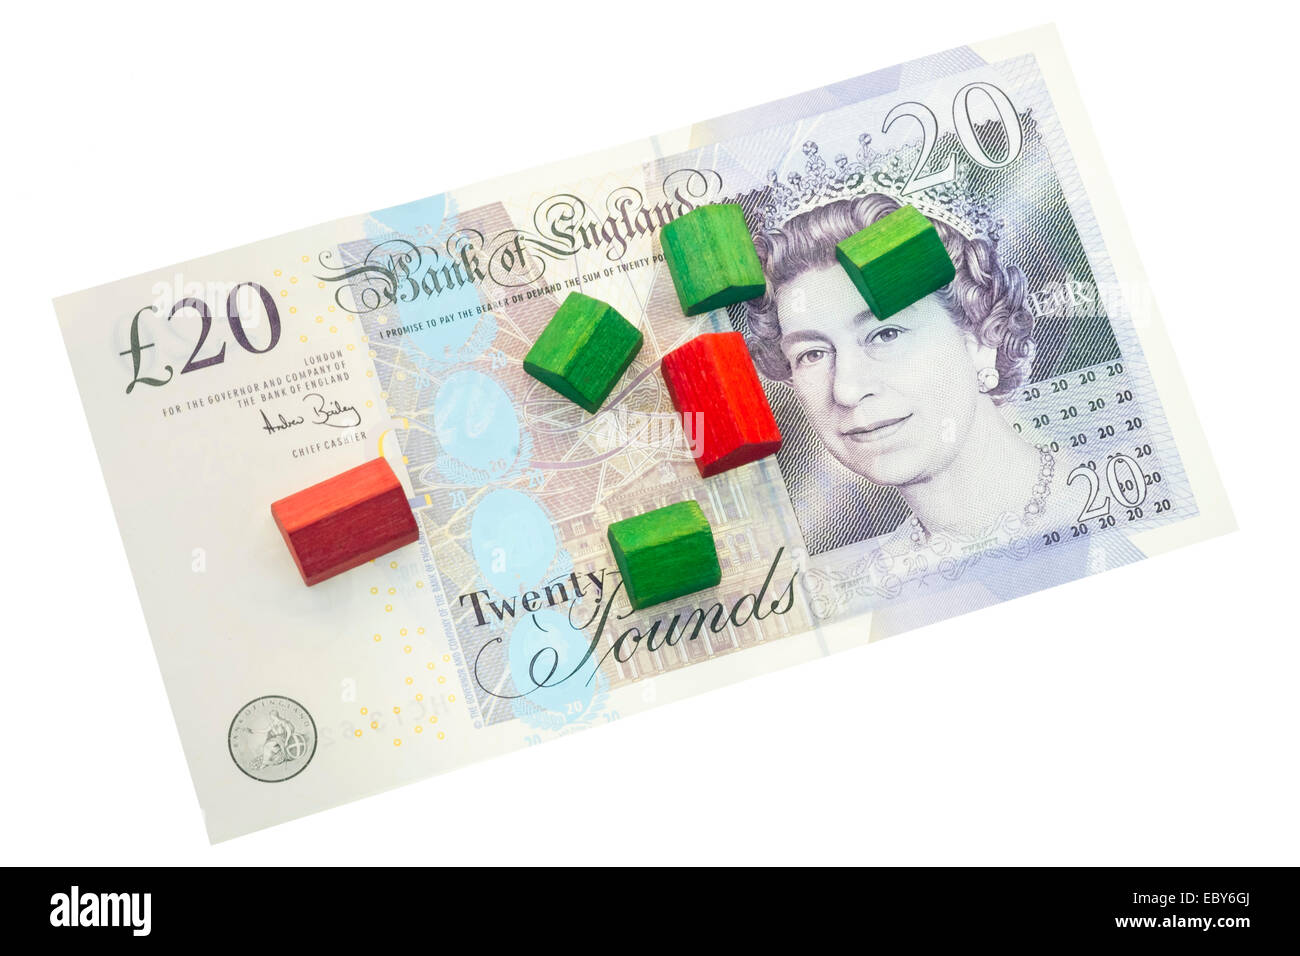 Toy houses on a twenty pound note. Concept for money & the housing market, stamp duty etc. - Stock Image